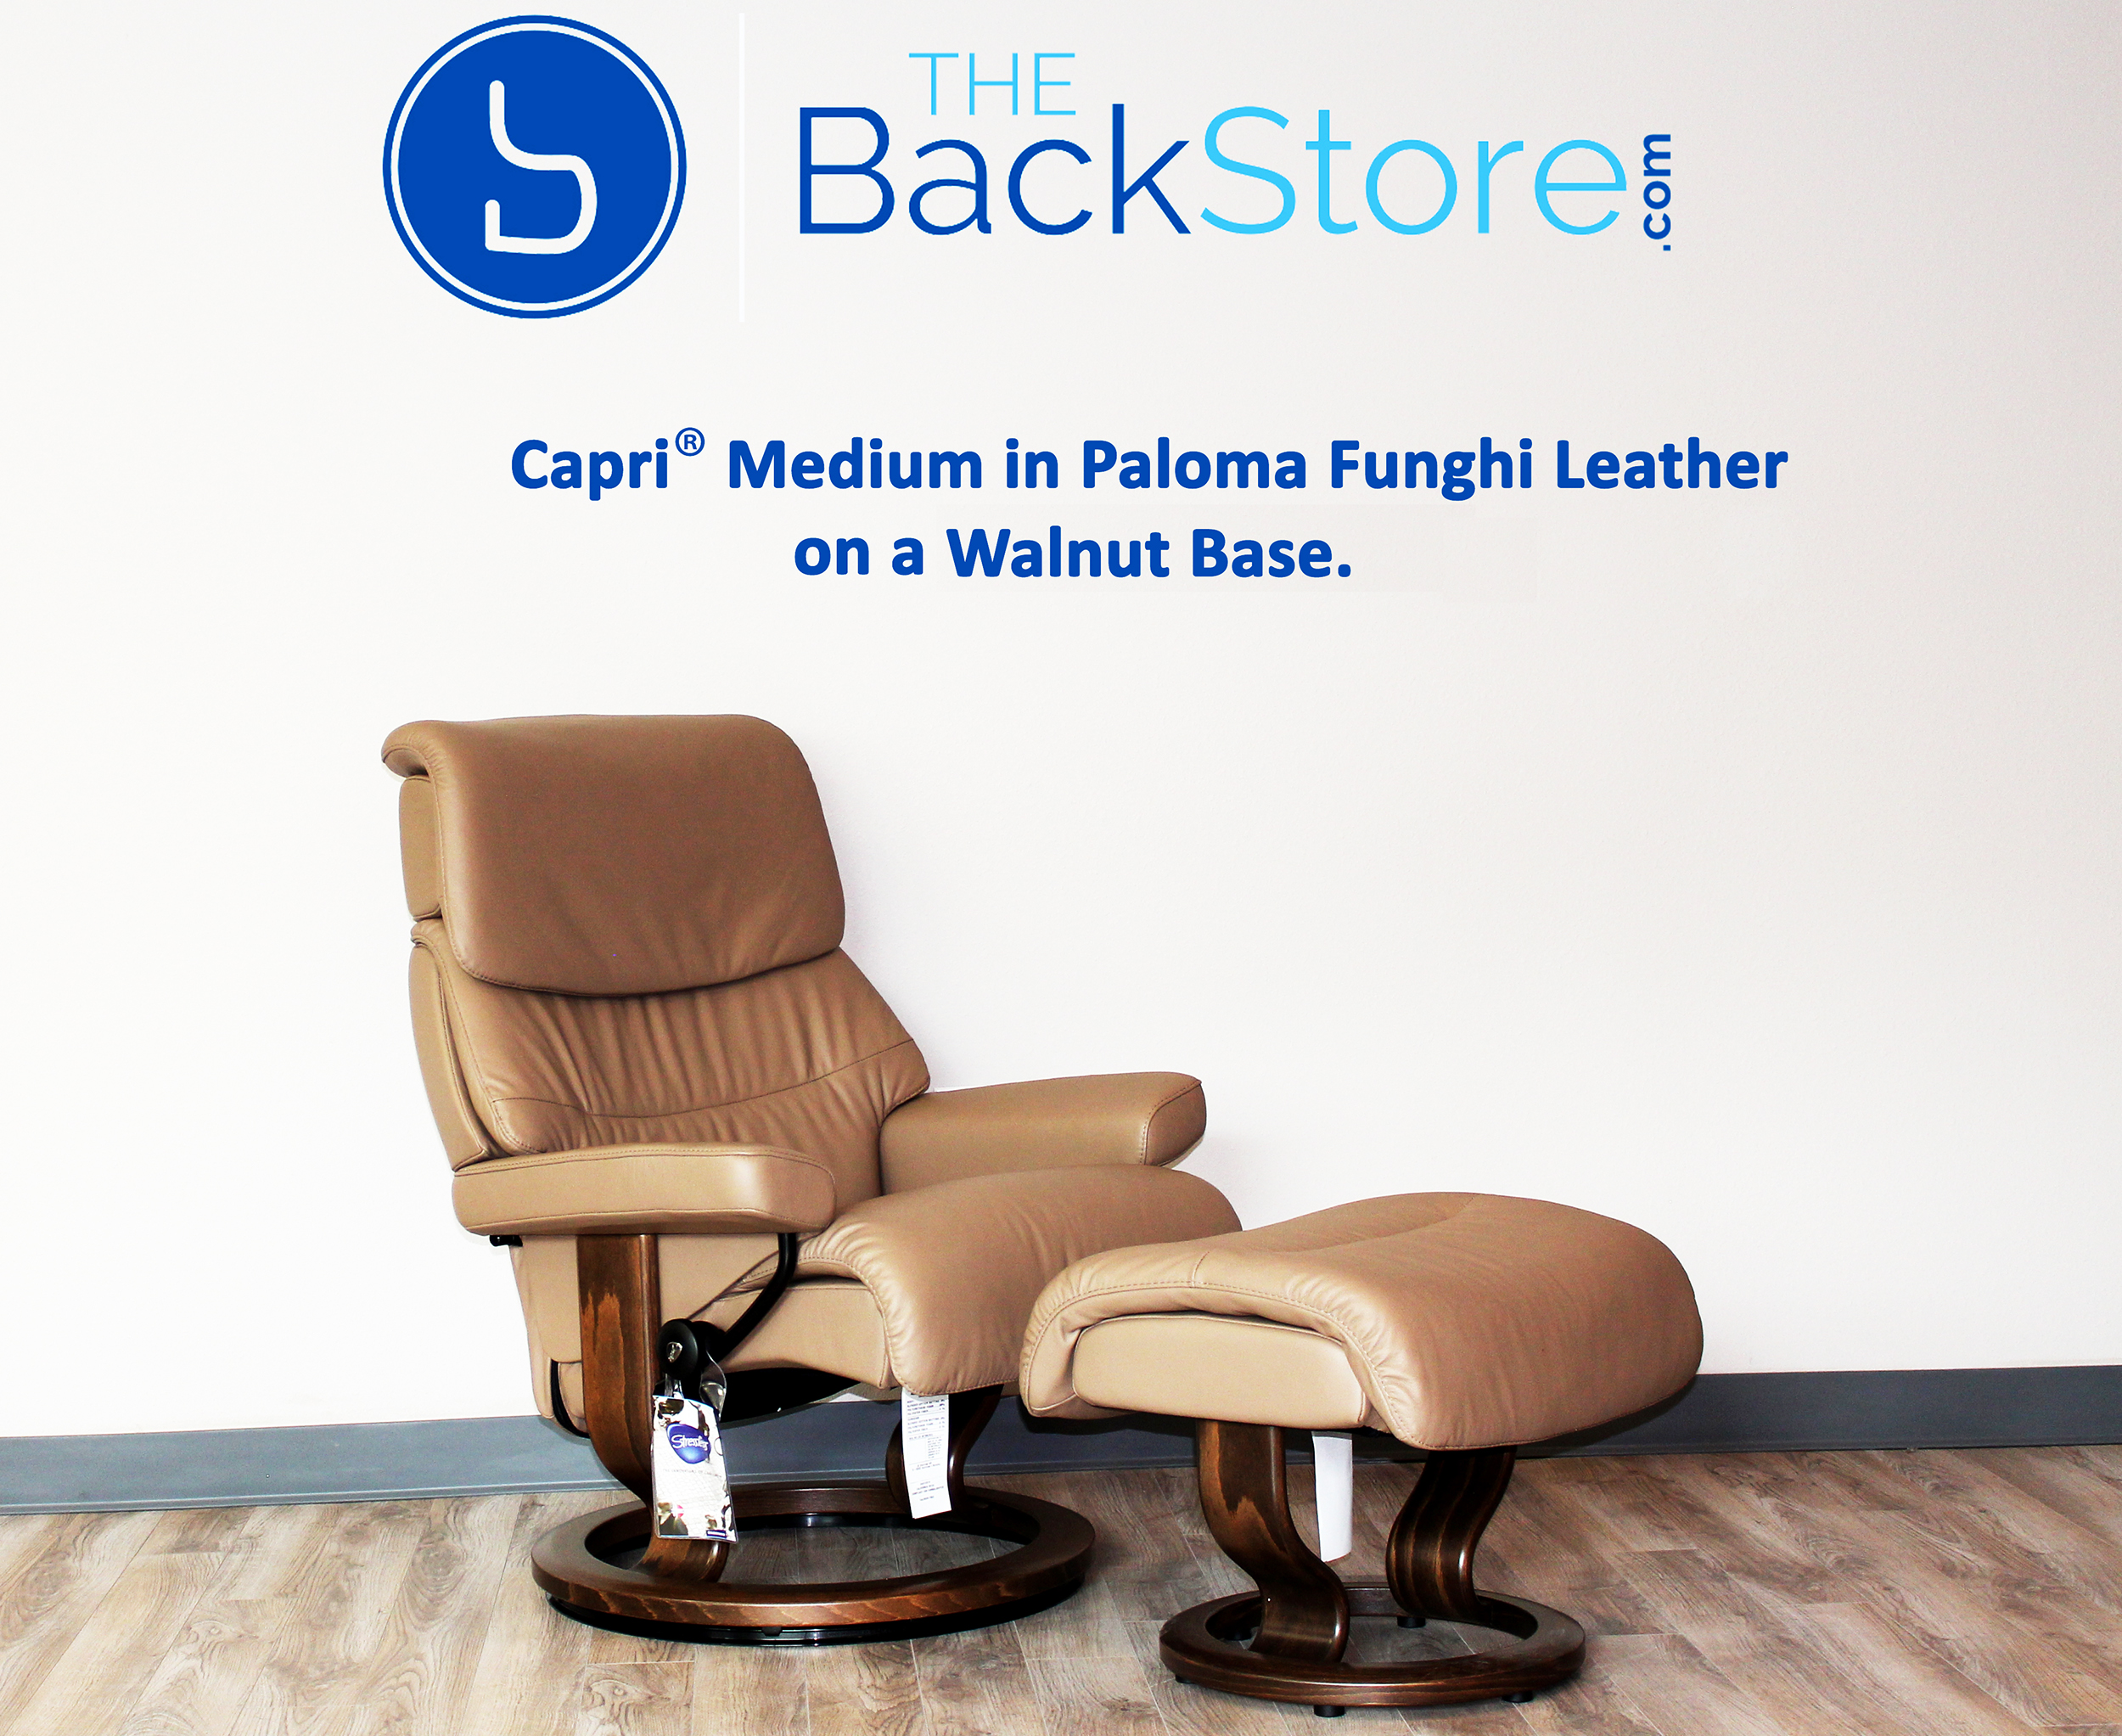 Stressless Capri Paloma Funghi Leather Recliner Chair and Ottoman by Ekornes  sc 1 st  BACKSTORE.COM & Stressless Capri Paloma Funghi Leather by Ekornes - Stressless ... islam-shia.org